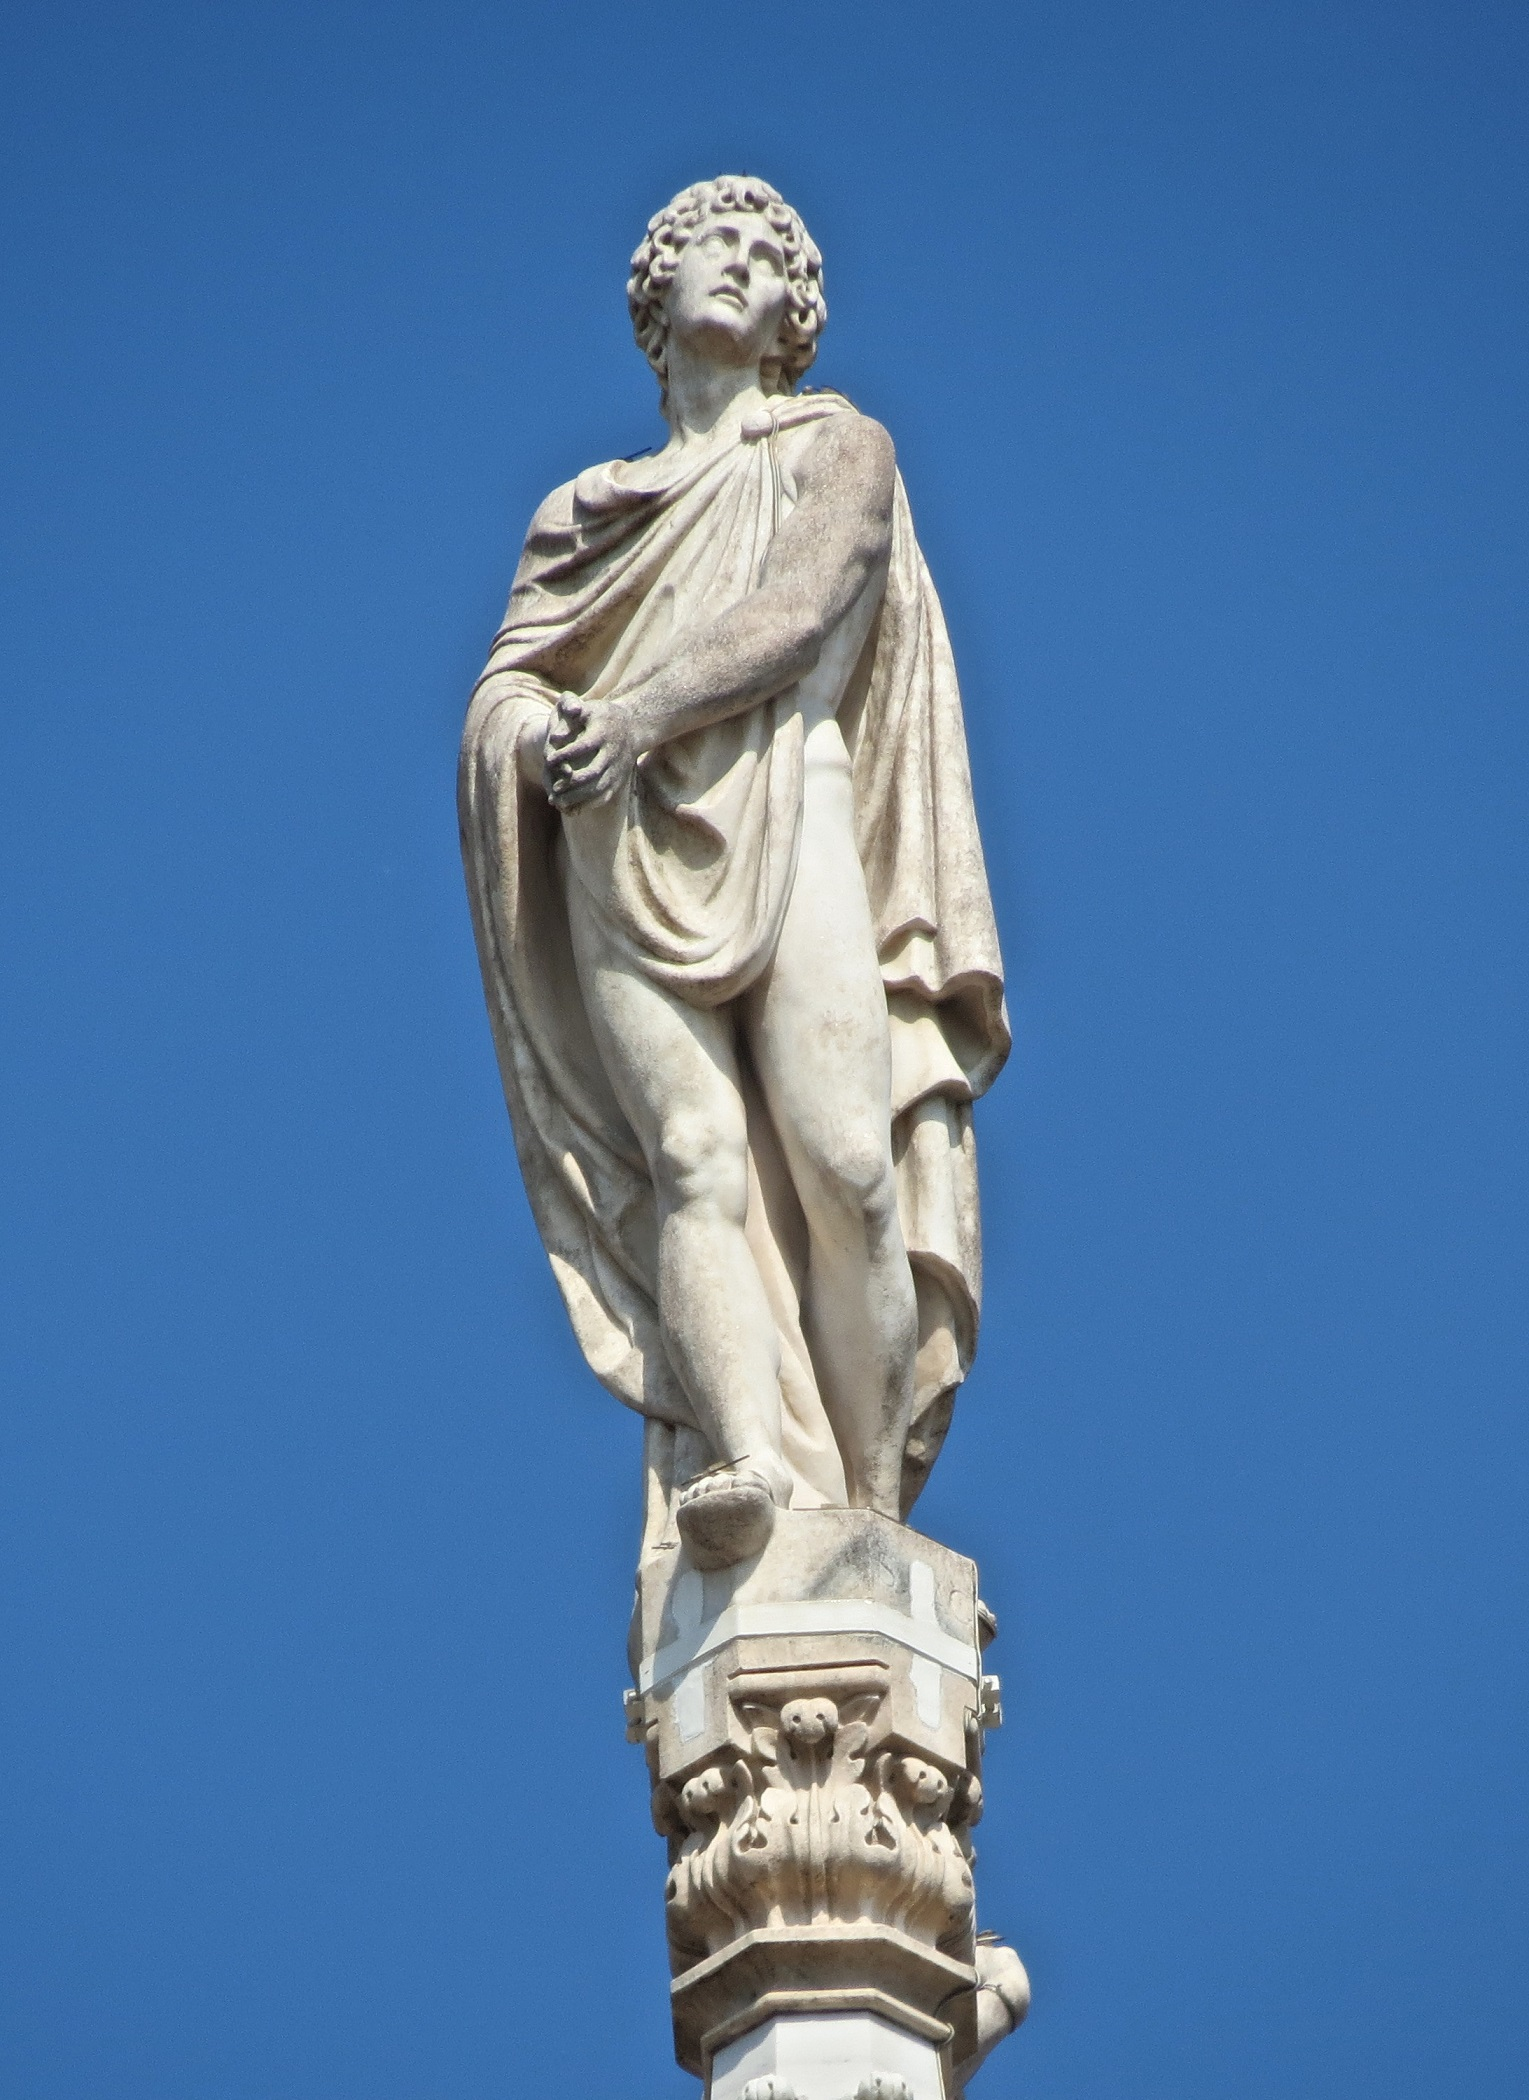 The statue of Saint Agricola